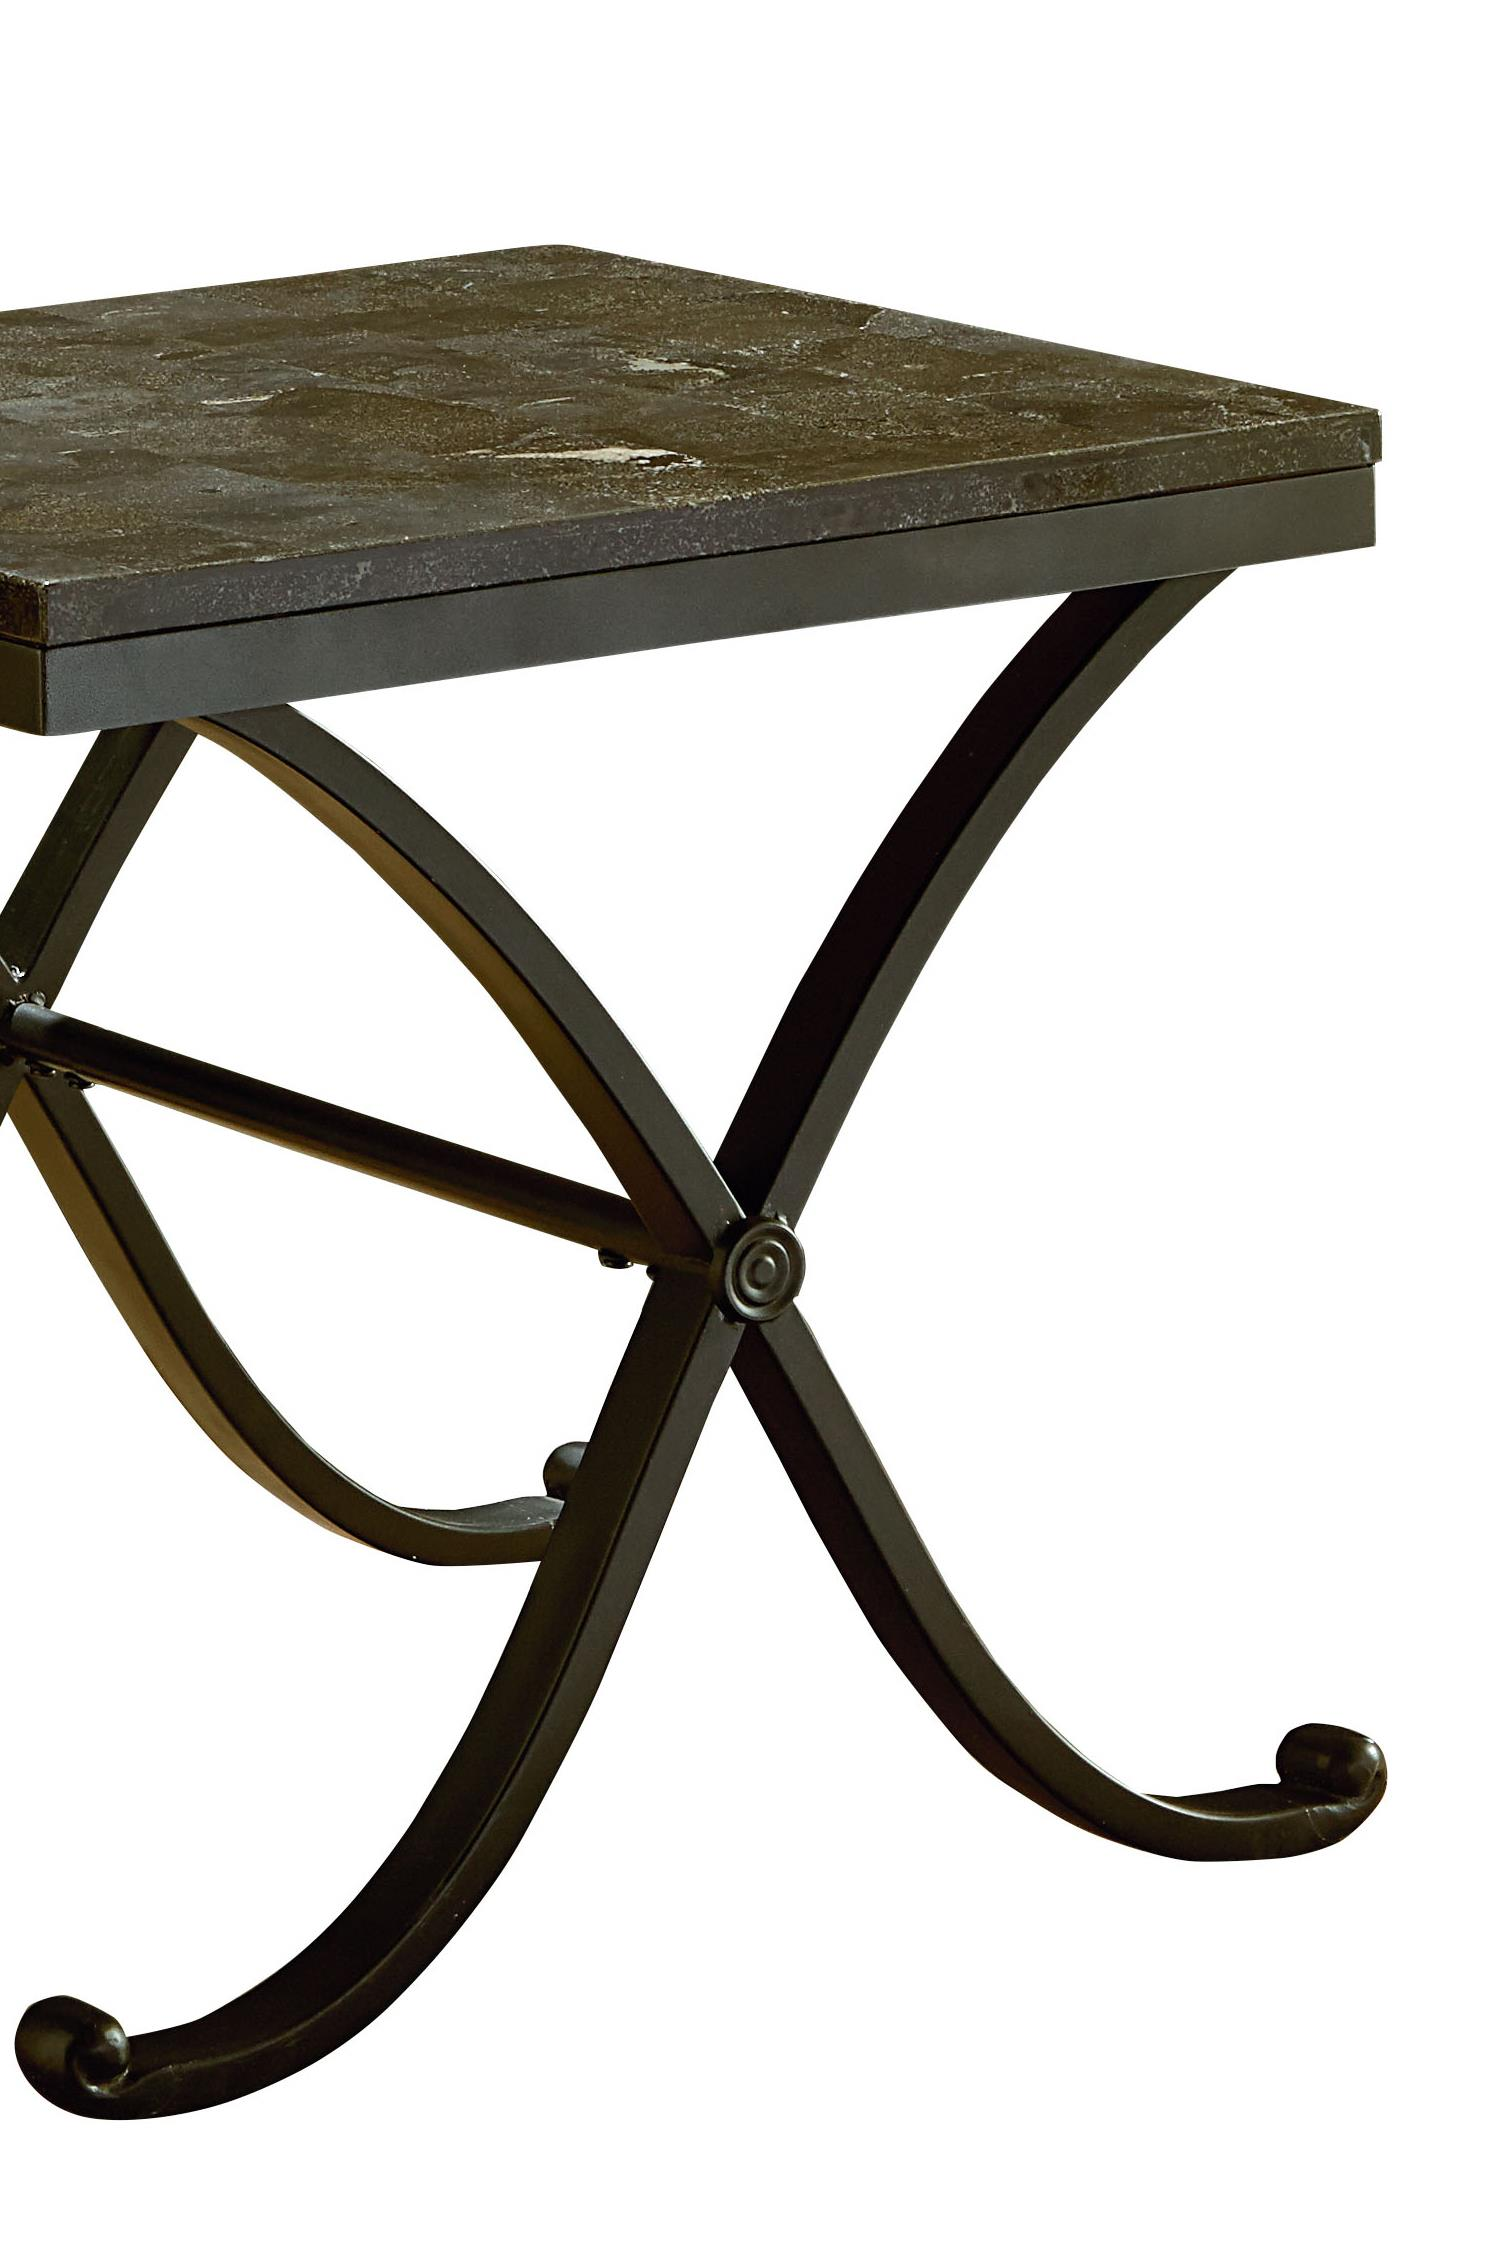 Standard Furniture Santiago Metal Cocktail Table with a Stone Top